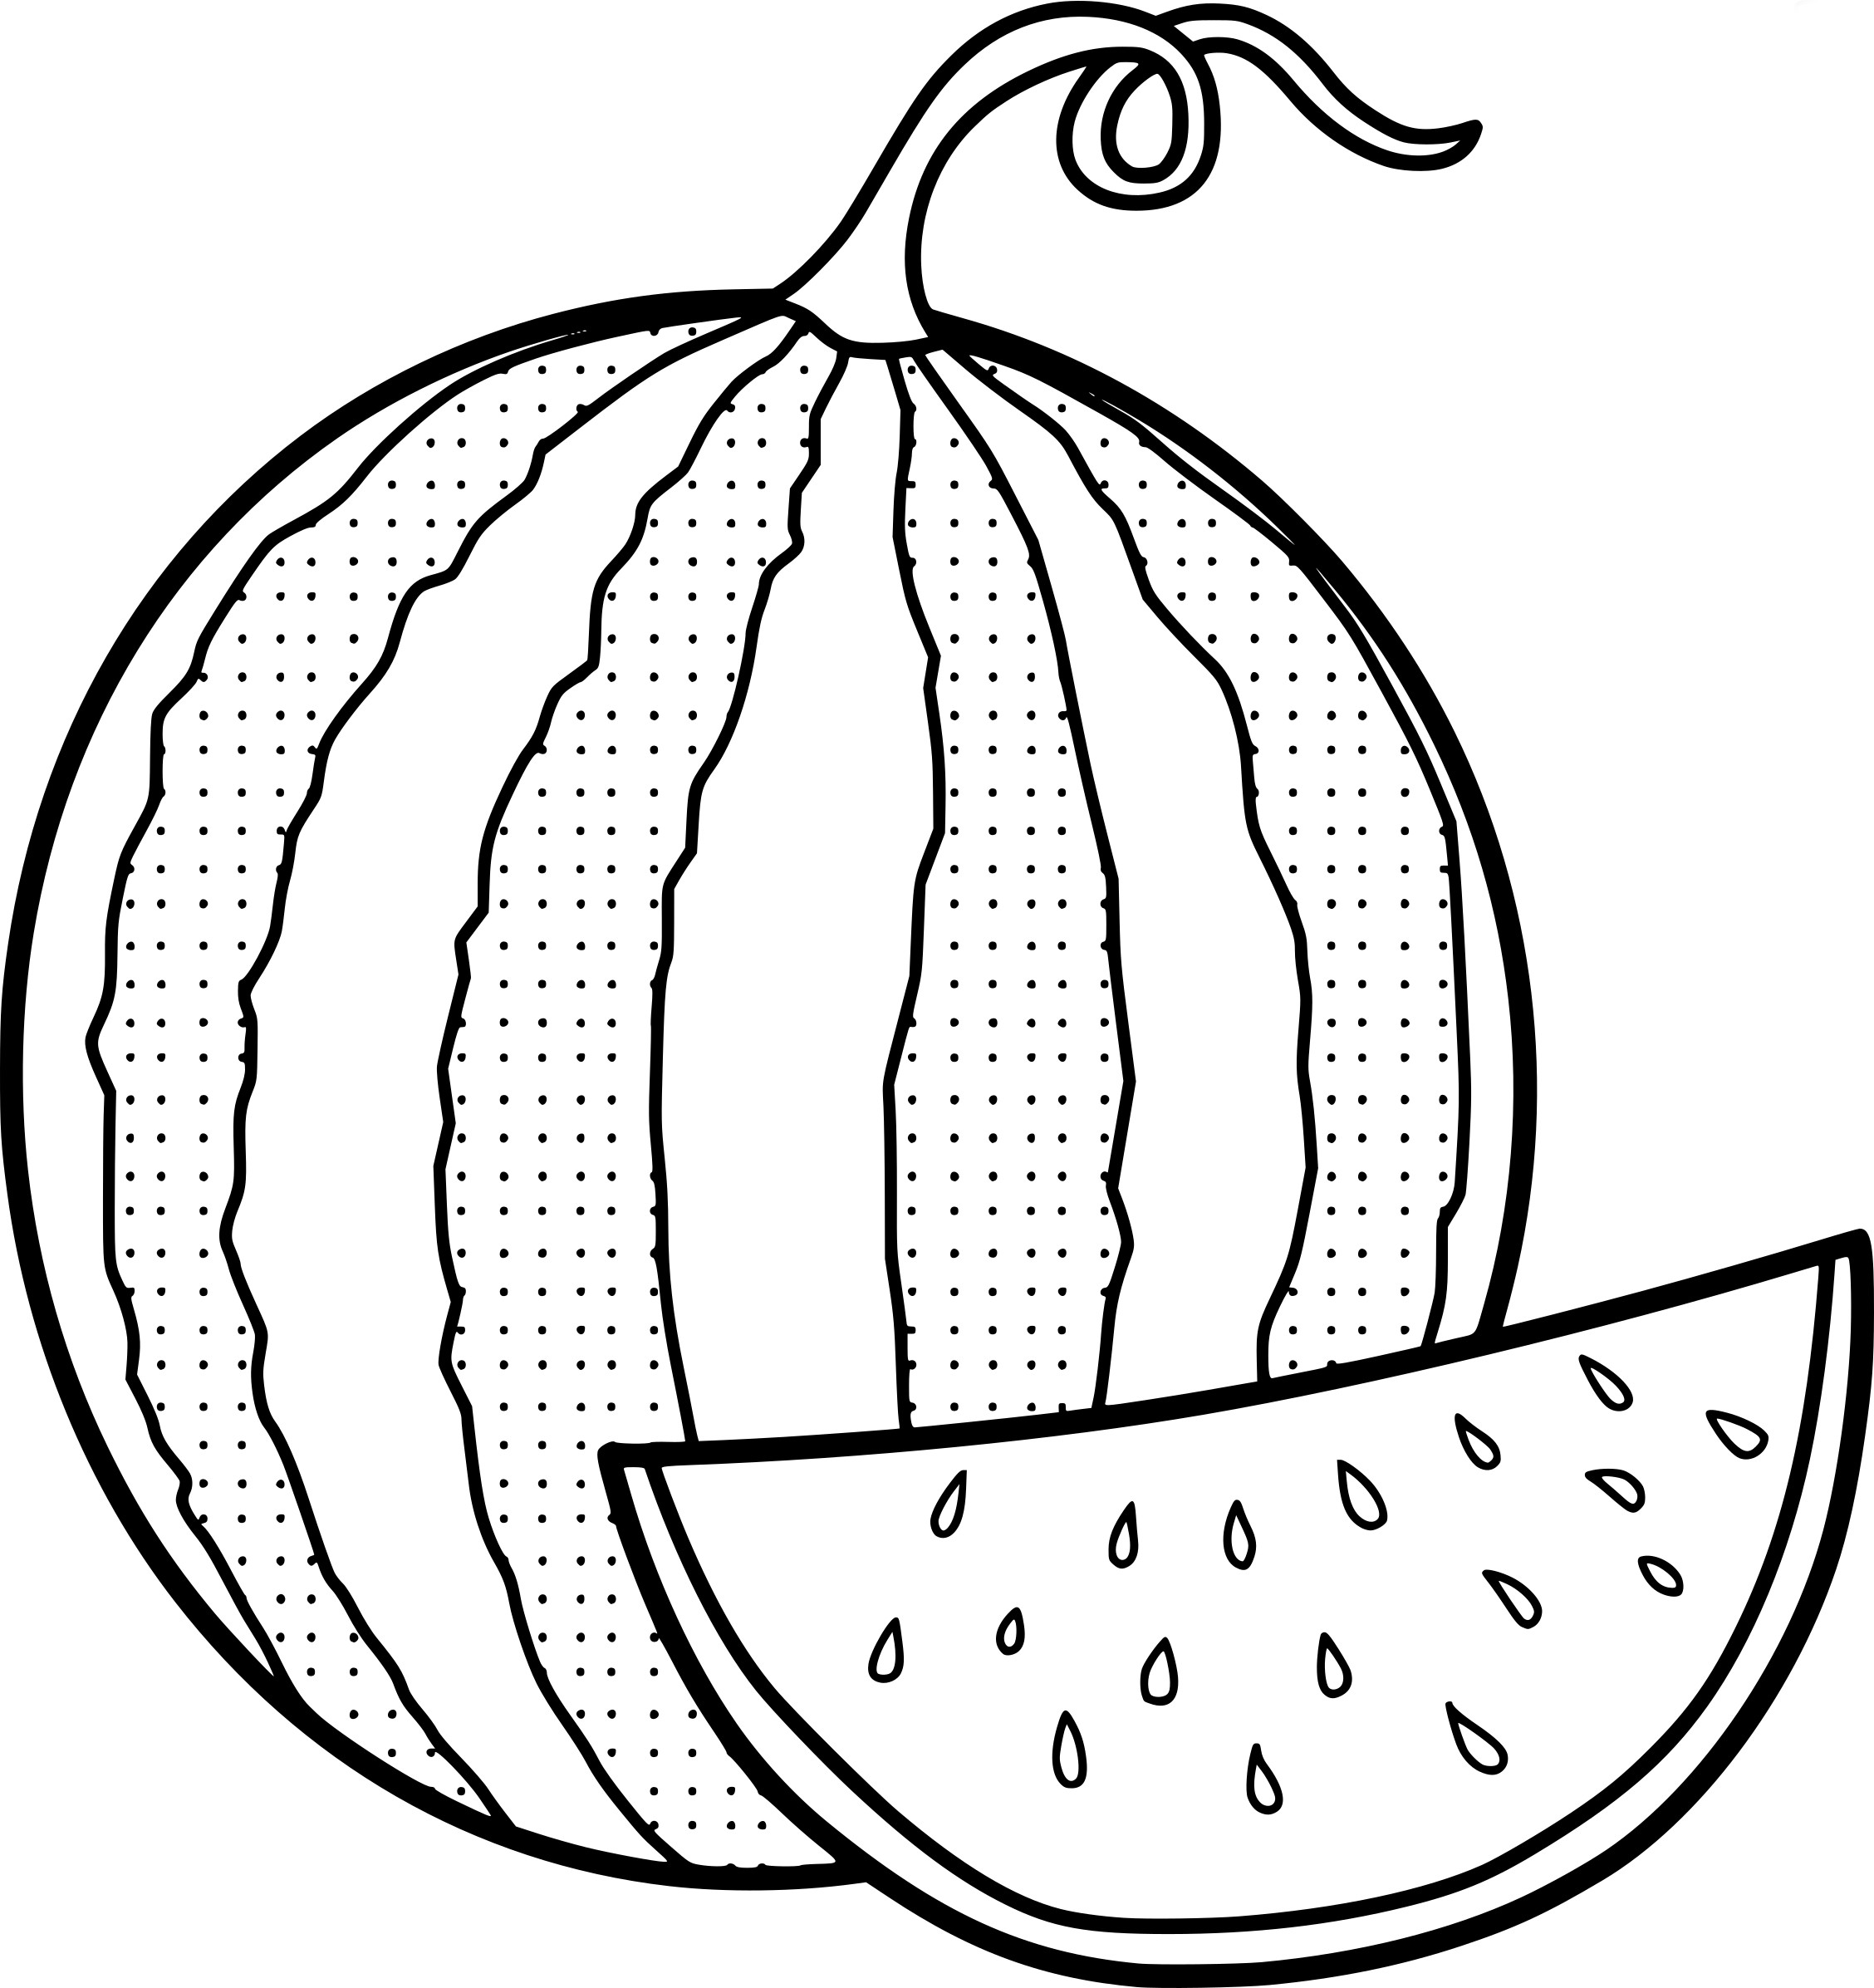 watermelon coloring images watermelon coloring pages best coloring pages for kids images watermelon coloring